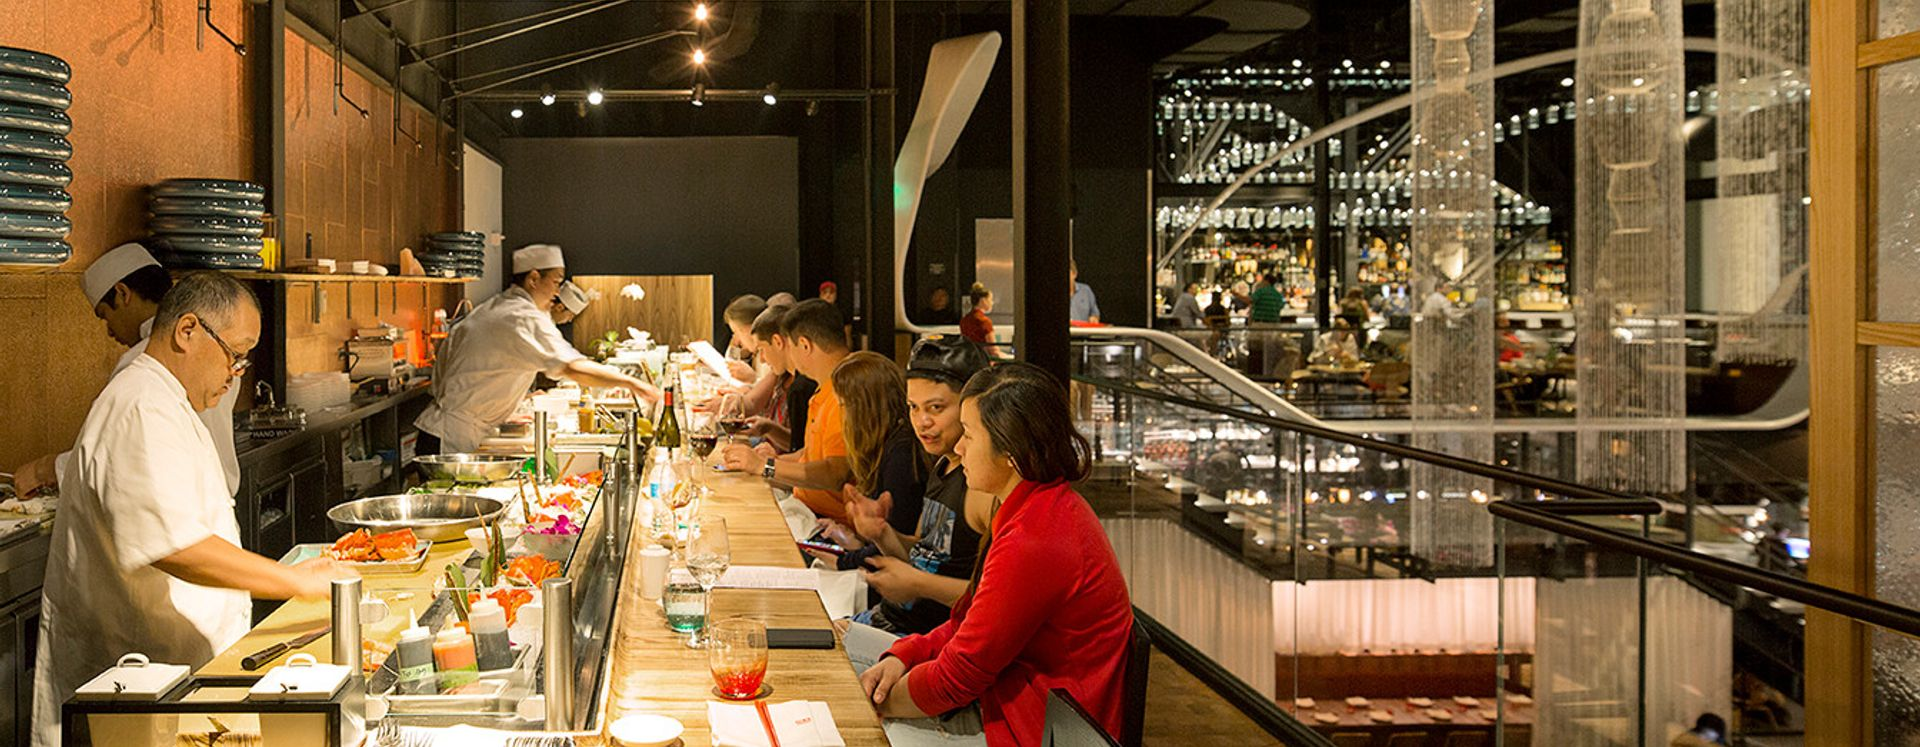 People eating at a sushi bar, while sushi chefs prepare orders, at Morimoto Asia restaurant in Disney Springs